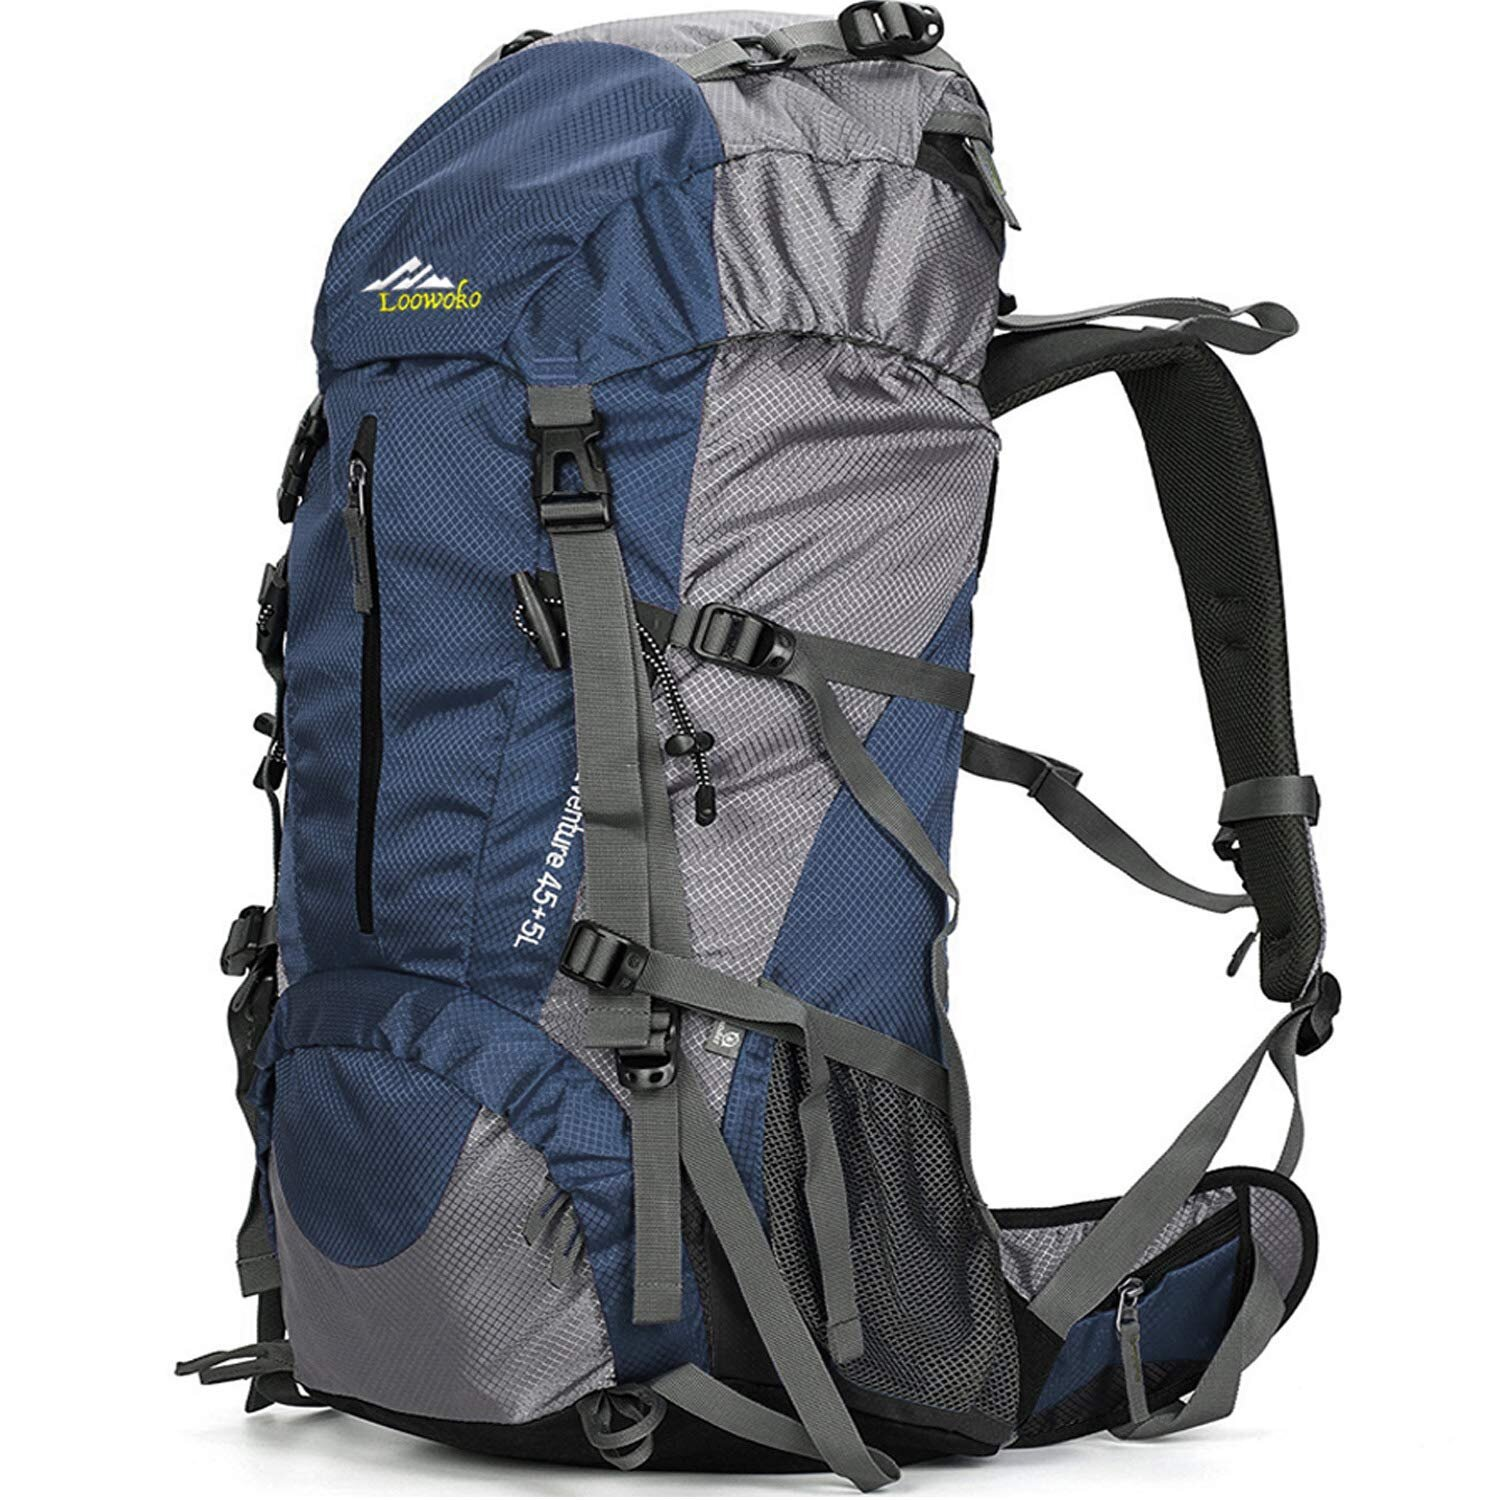 Hiking-Backpack-For-Men-Gifts-For-Hikers.jpg